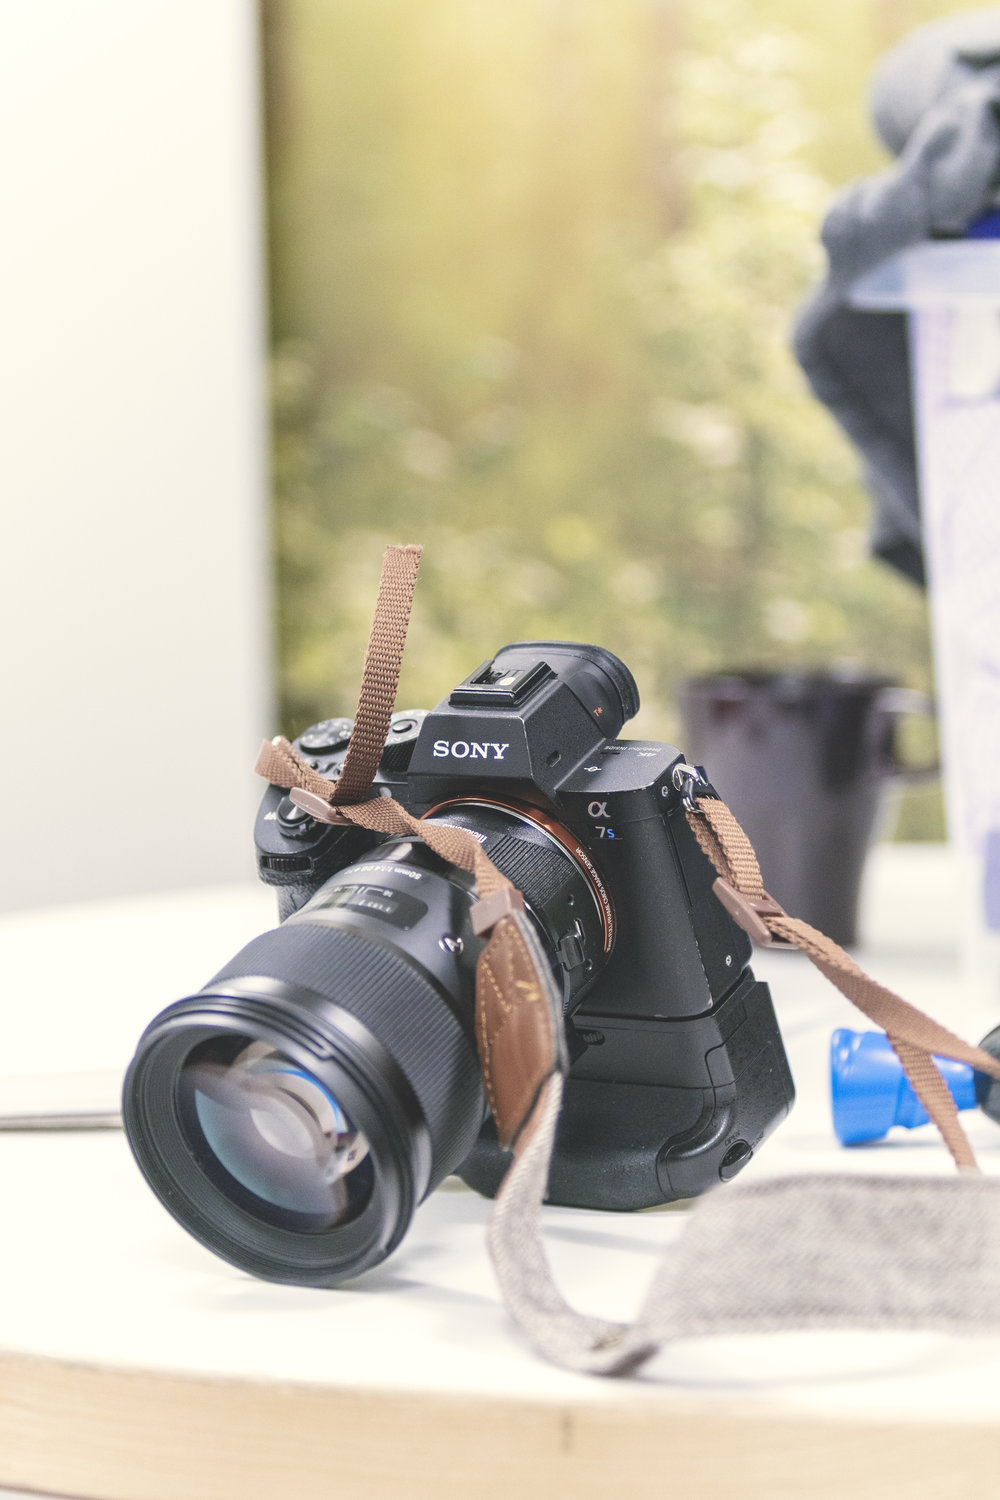 My Sony A7Sii with Sigma 50mm F1.4 ART lens and battery grip